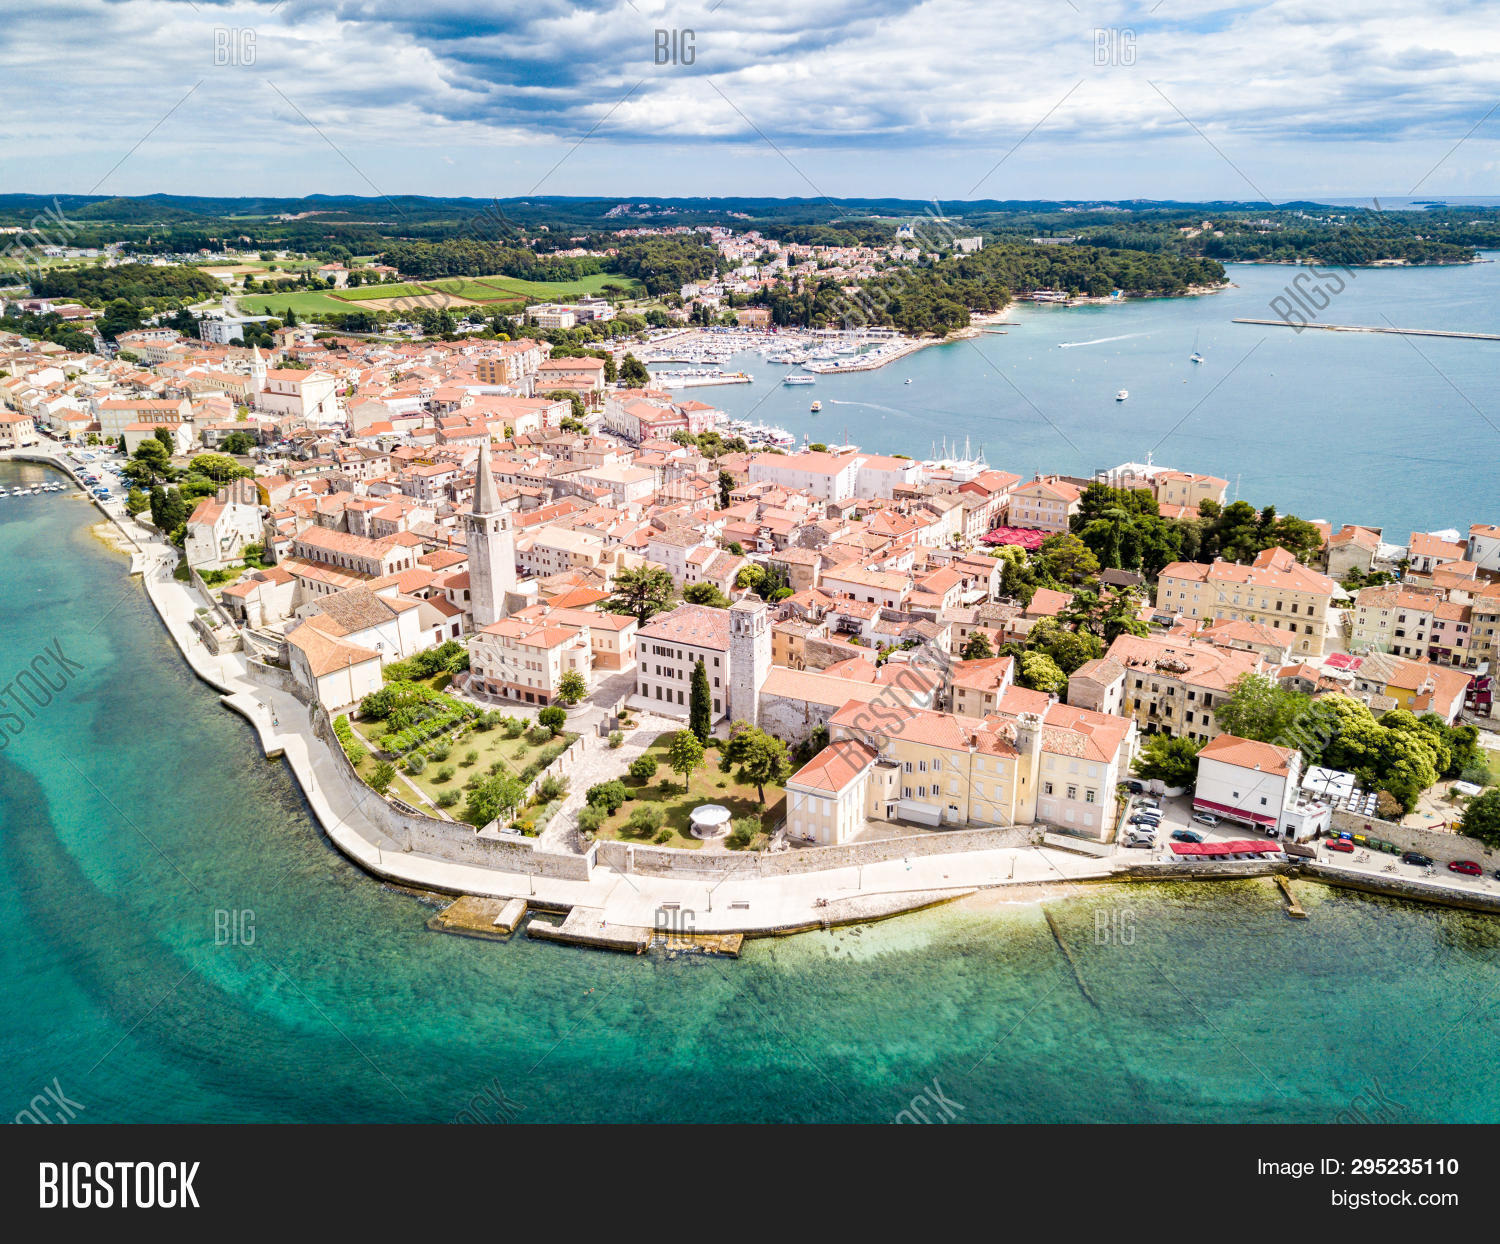 adriatic,aerial,architecture,azure,bay,beach,bell,blue,boats,buildings,city,cityscape,clock,coast,coastline,croatia,croatian,euphrasian,europe,harbor,historical,istria,lagoon,landscape,mediterranean,nature,panoramic,parenzo,peninsula,piers,porec,poreč,port,red,roofs,sea,shore,shoreline,summer,tiled,tourism,tower,town,travel,turquoise,unesco,urban,view,watch